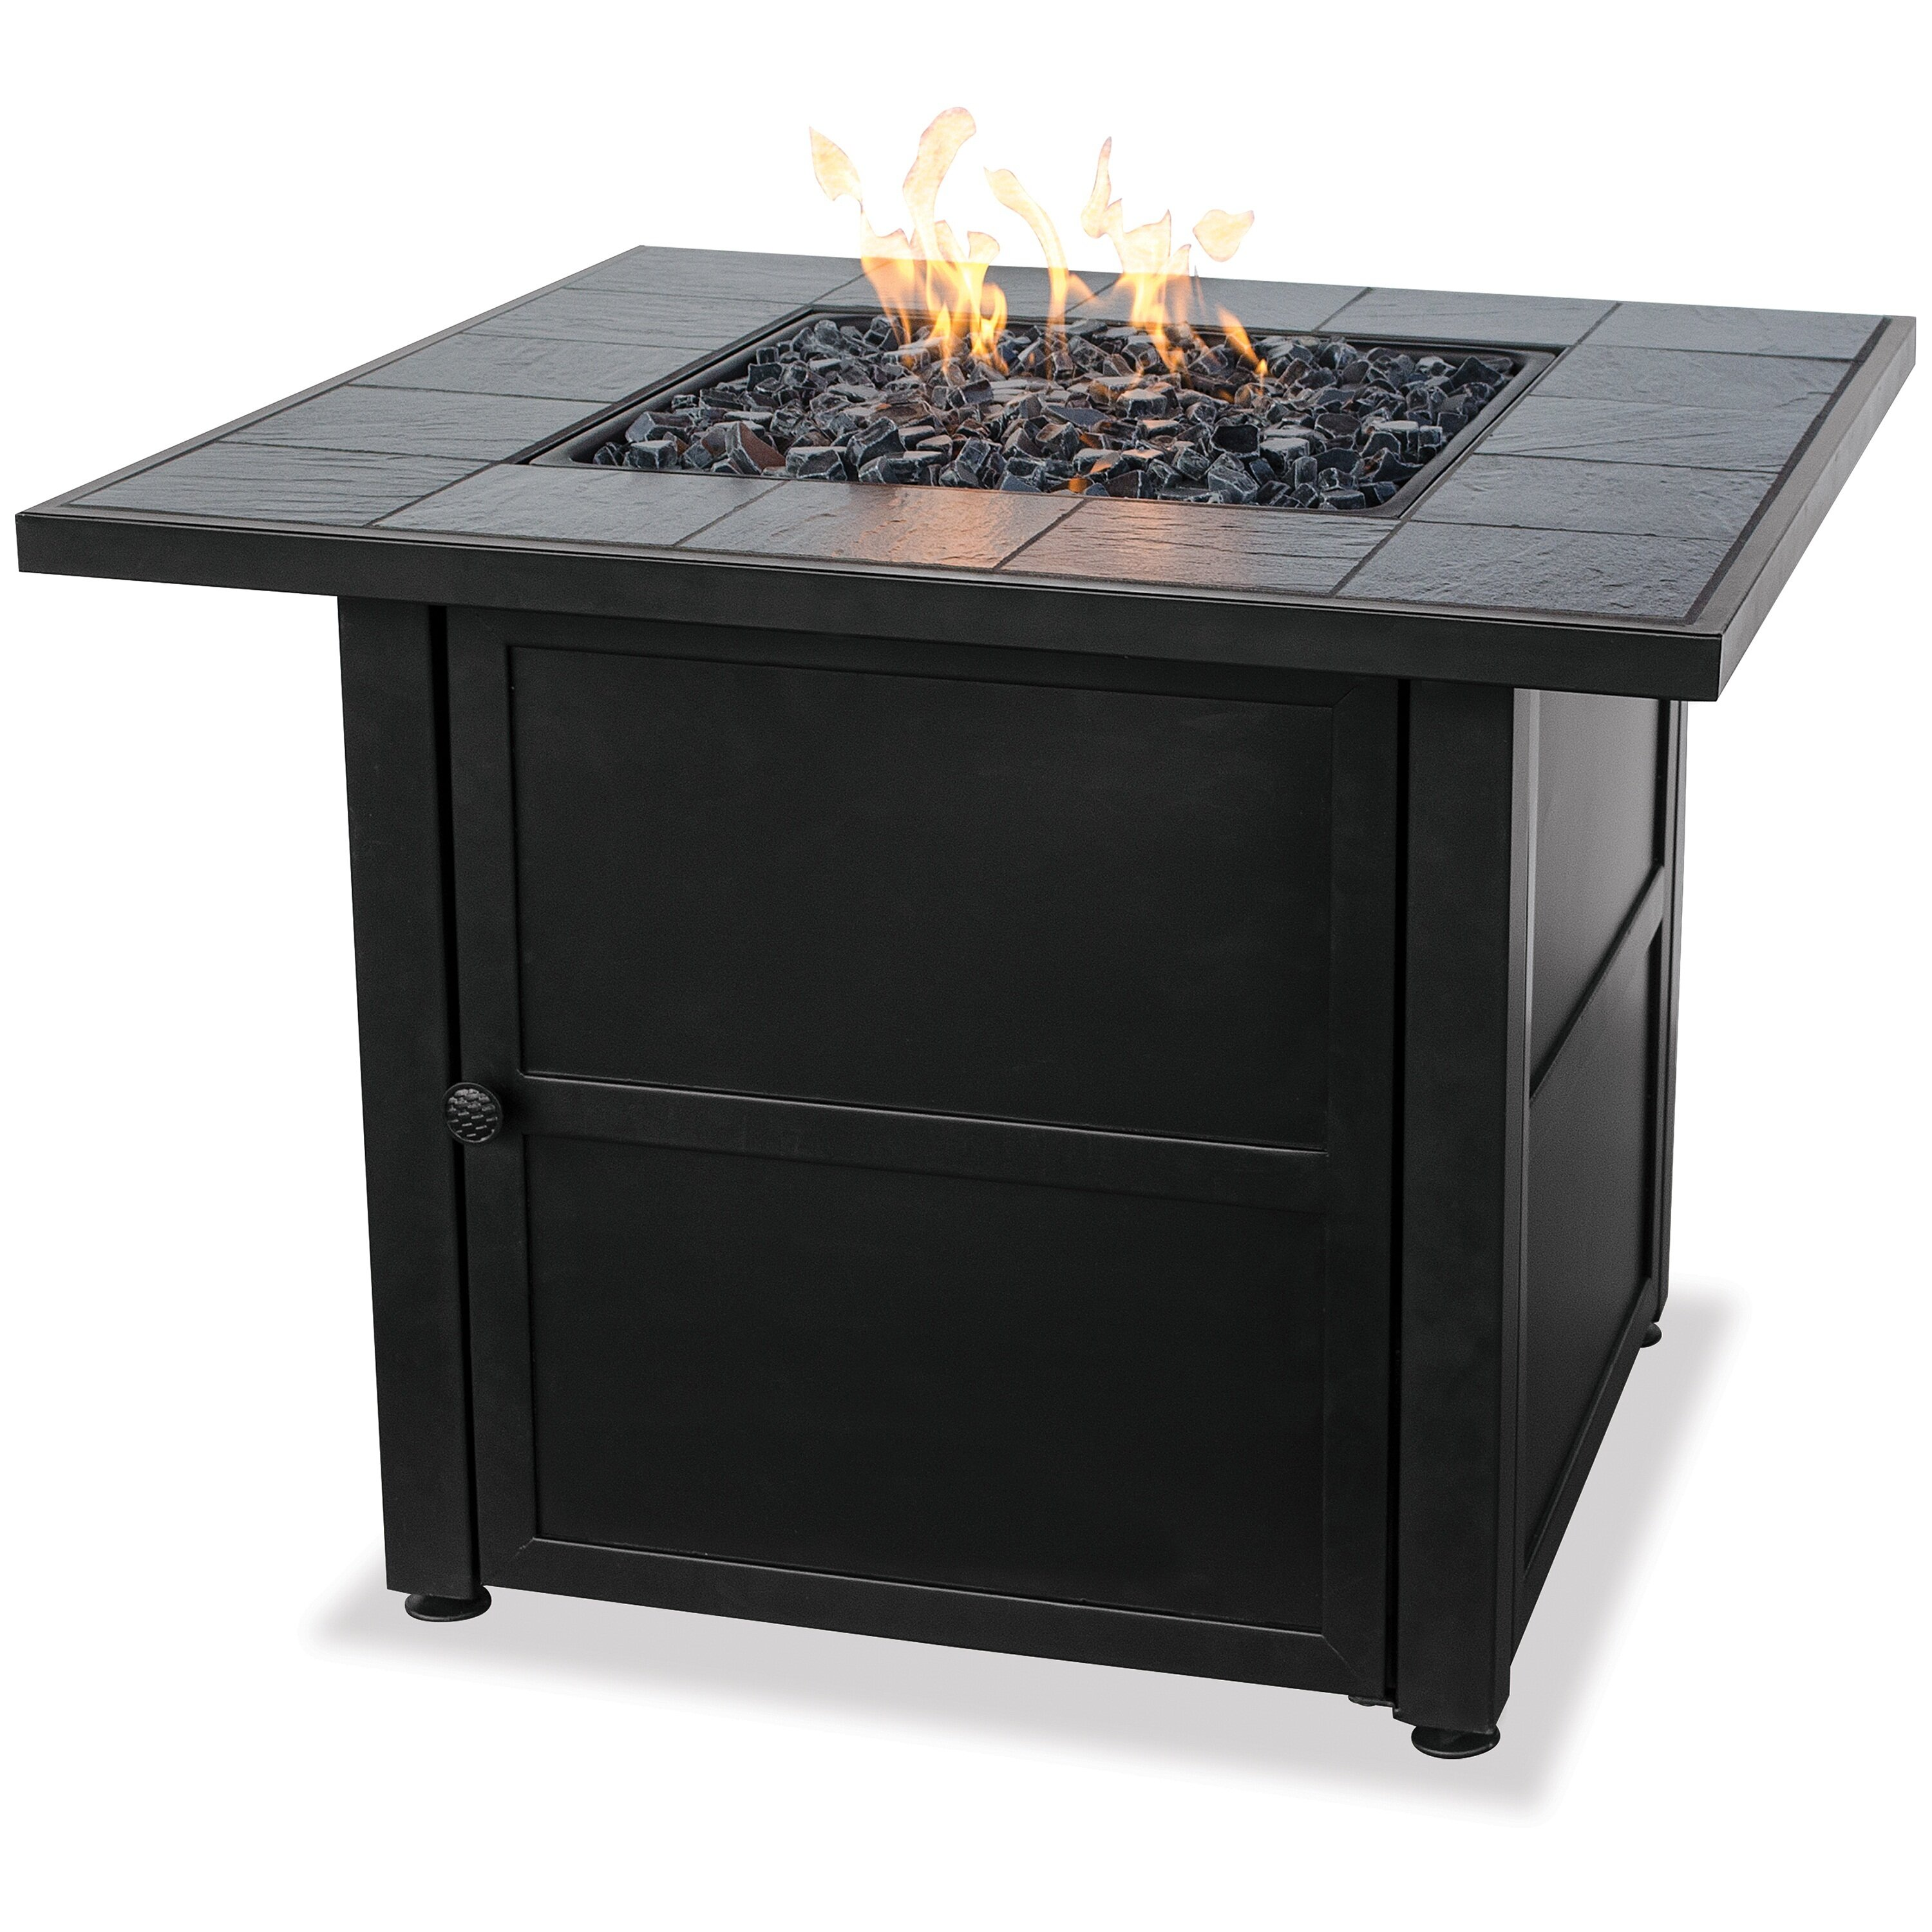 google fireplace dickinson stove search propane pin small tiny saltlife pinterest